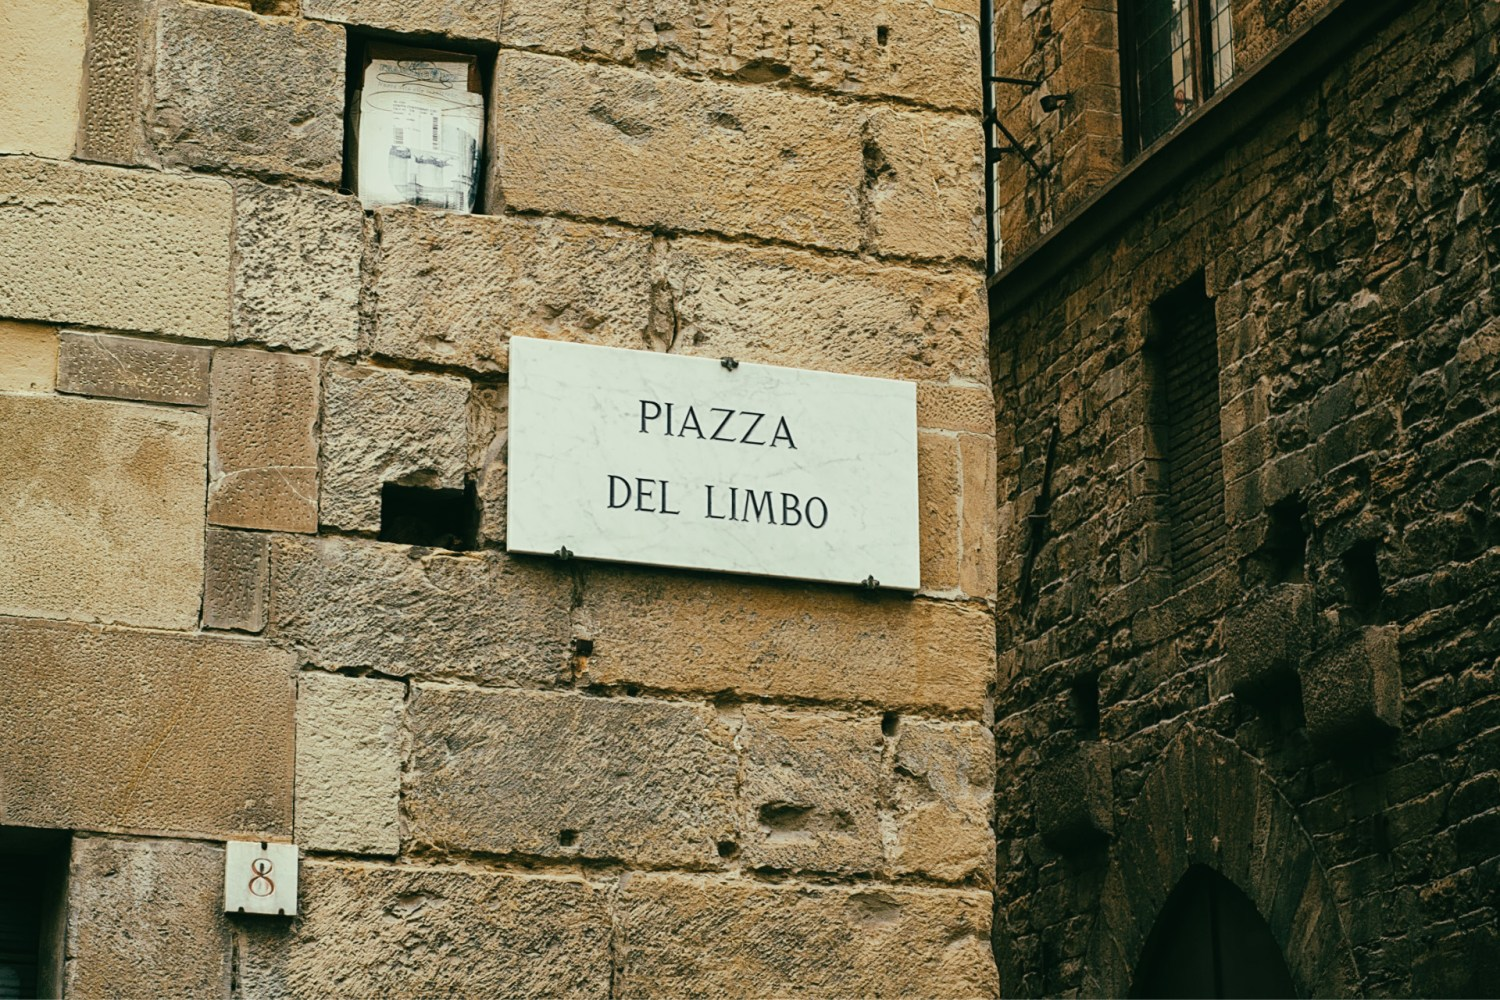 Piazza Del Limbo sign post in Florence